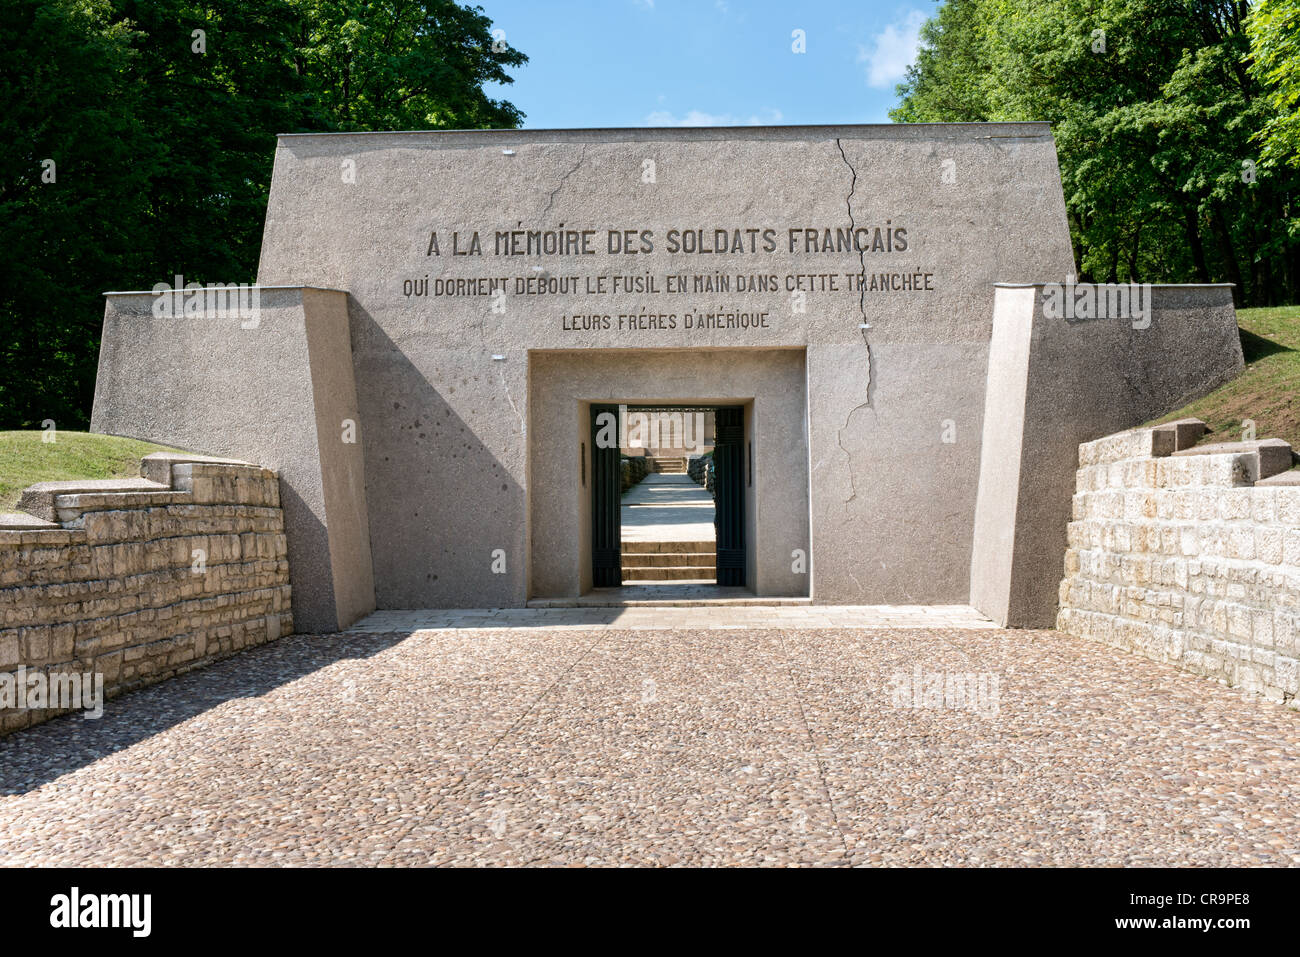 The entrance to the trench of bayonets memorial, Verdun, France - Stock Image